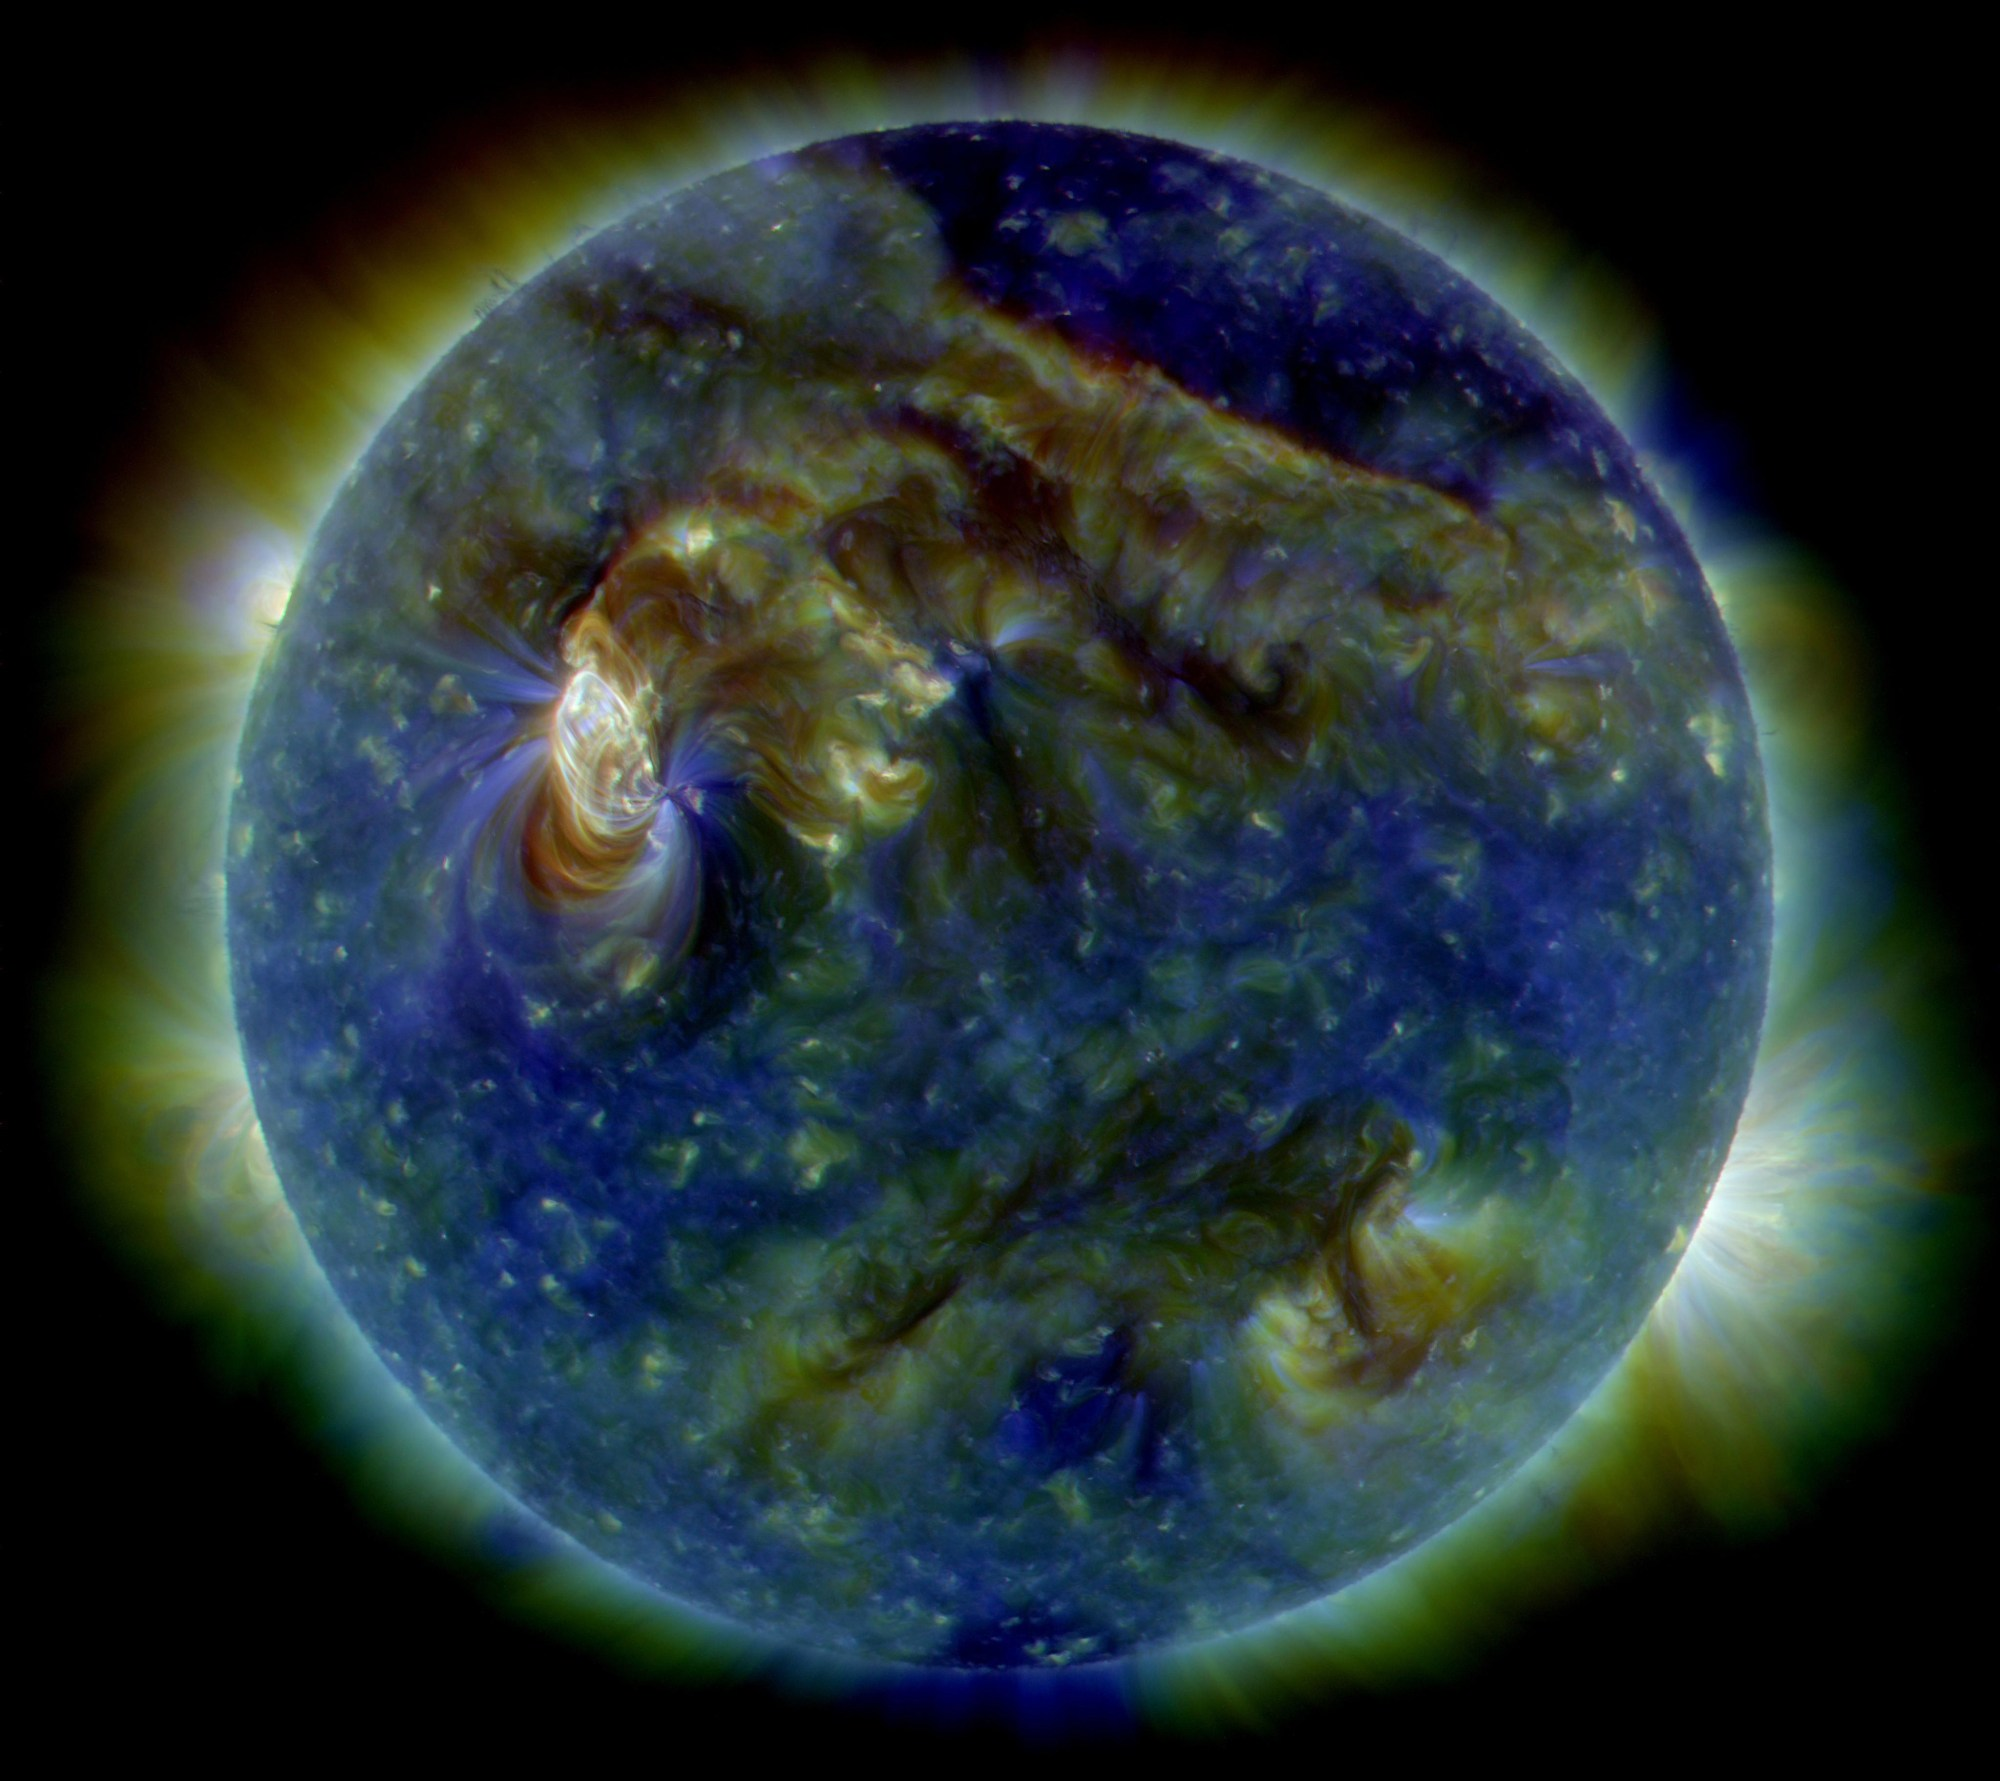 hight resolution of in this false color ultraviolet image the sun shows a c3 class solar flare white area on upper left a solar tsunami wave like structure upper right